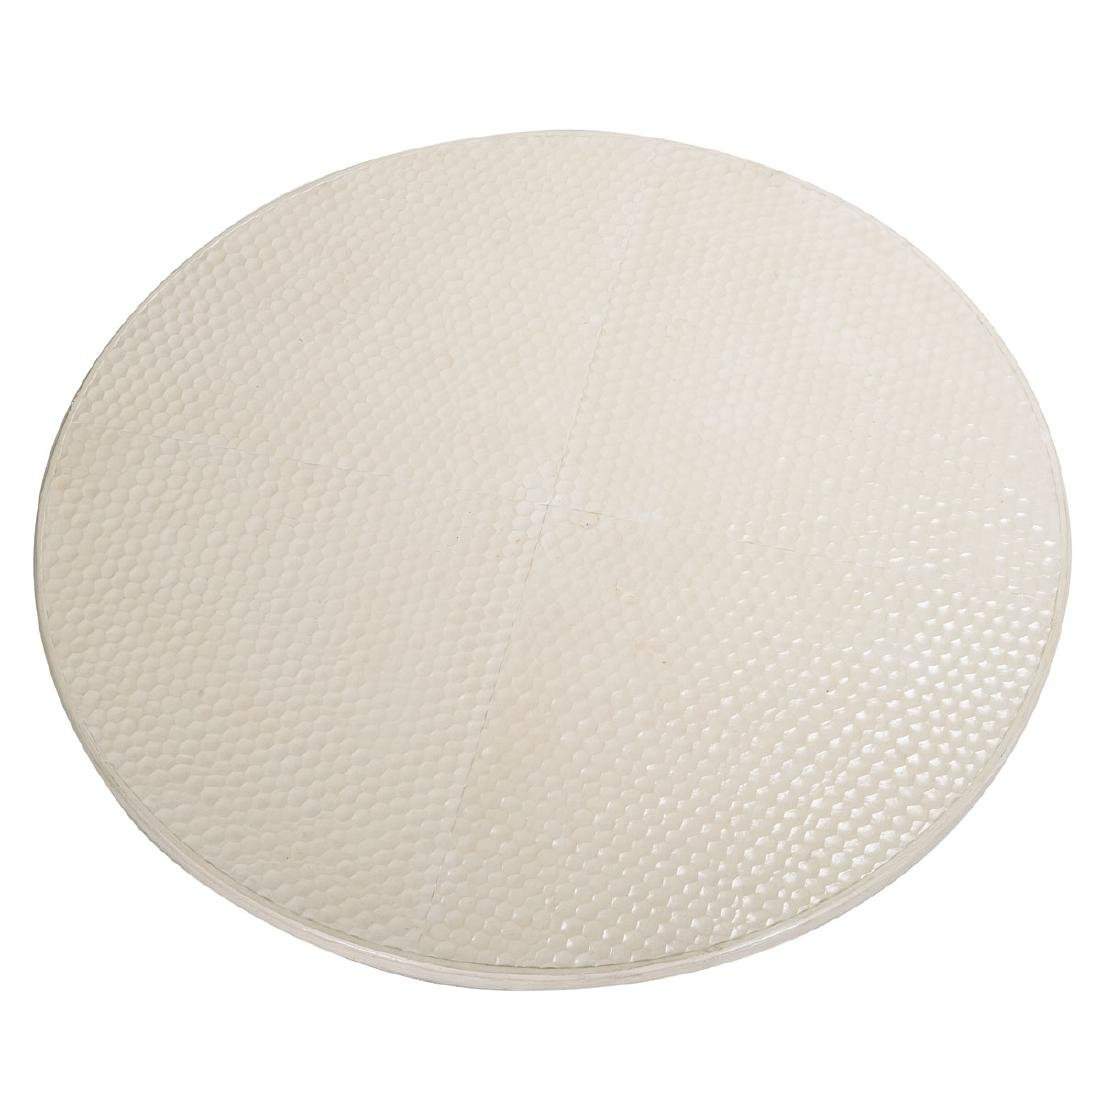 Large Contemporary White Glazed Ceramic Table Top with